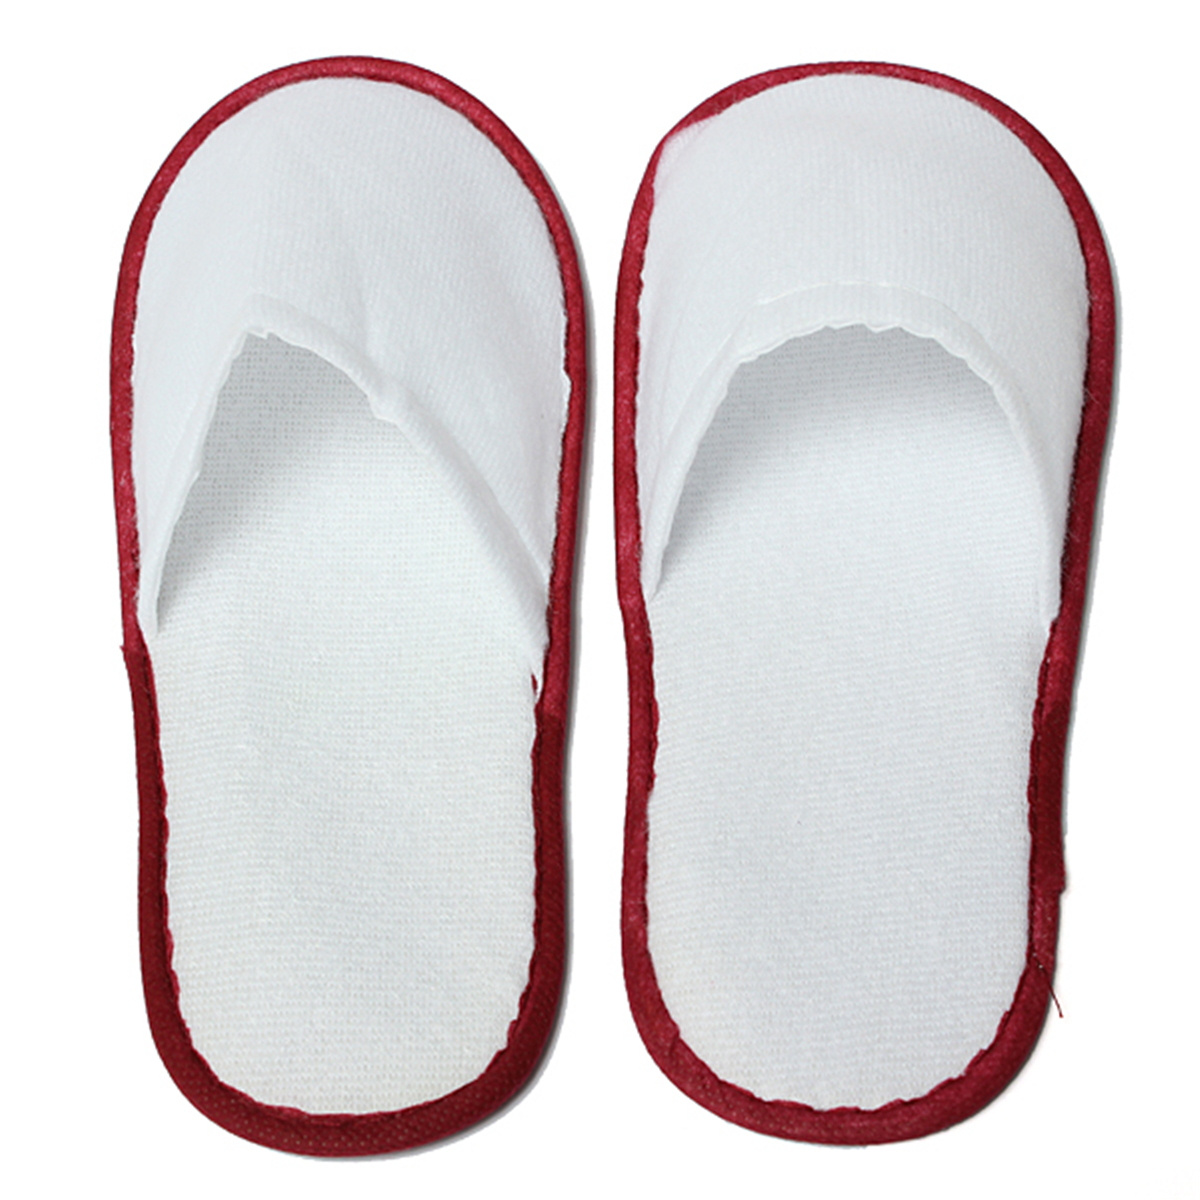 white towelling disposable slippers terry spa guest